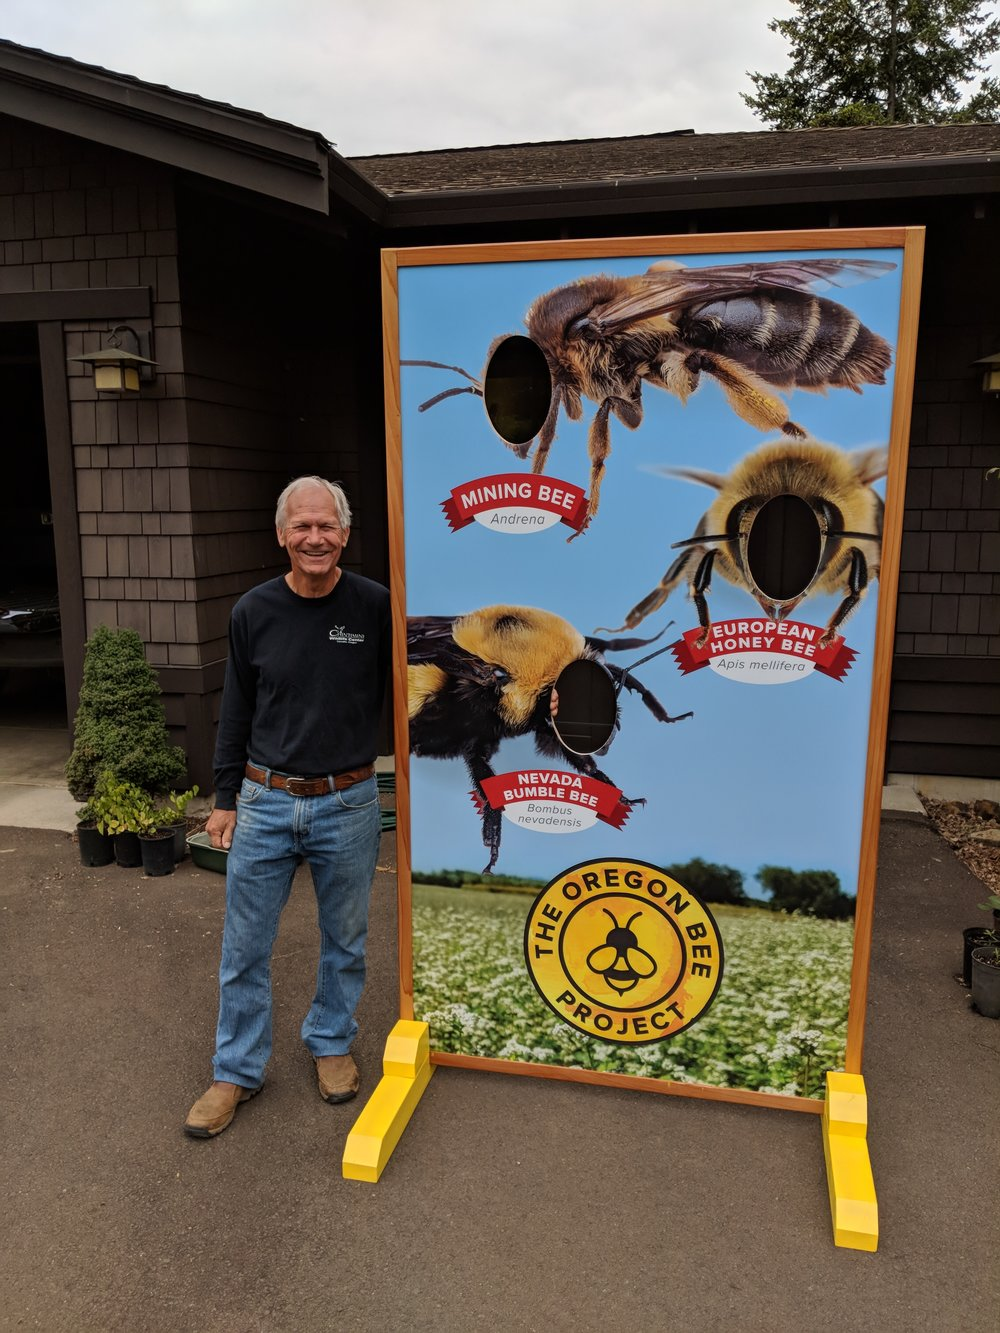 Benton County team leader Jerry Paul did the Oregon Bee Project a A BIG FAVOR this week by building this amazing stand for the Oregon Bee Project selfie booth. This booth will be busy this week, but it will be available for all the teams for outreach events in the future. Thanks Jerry and to all of you who are busy doing outreach this week.